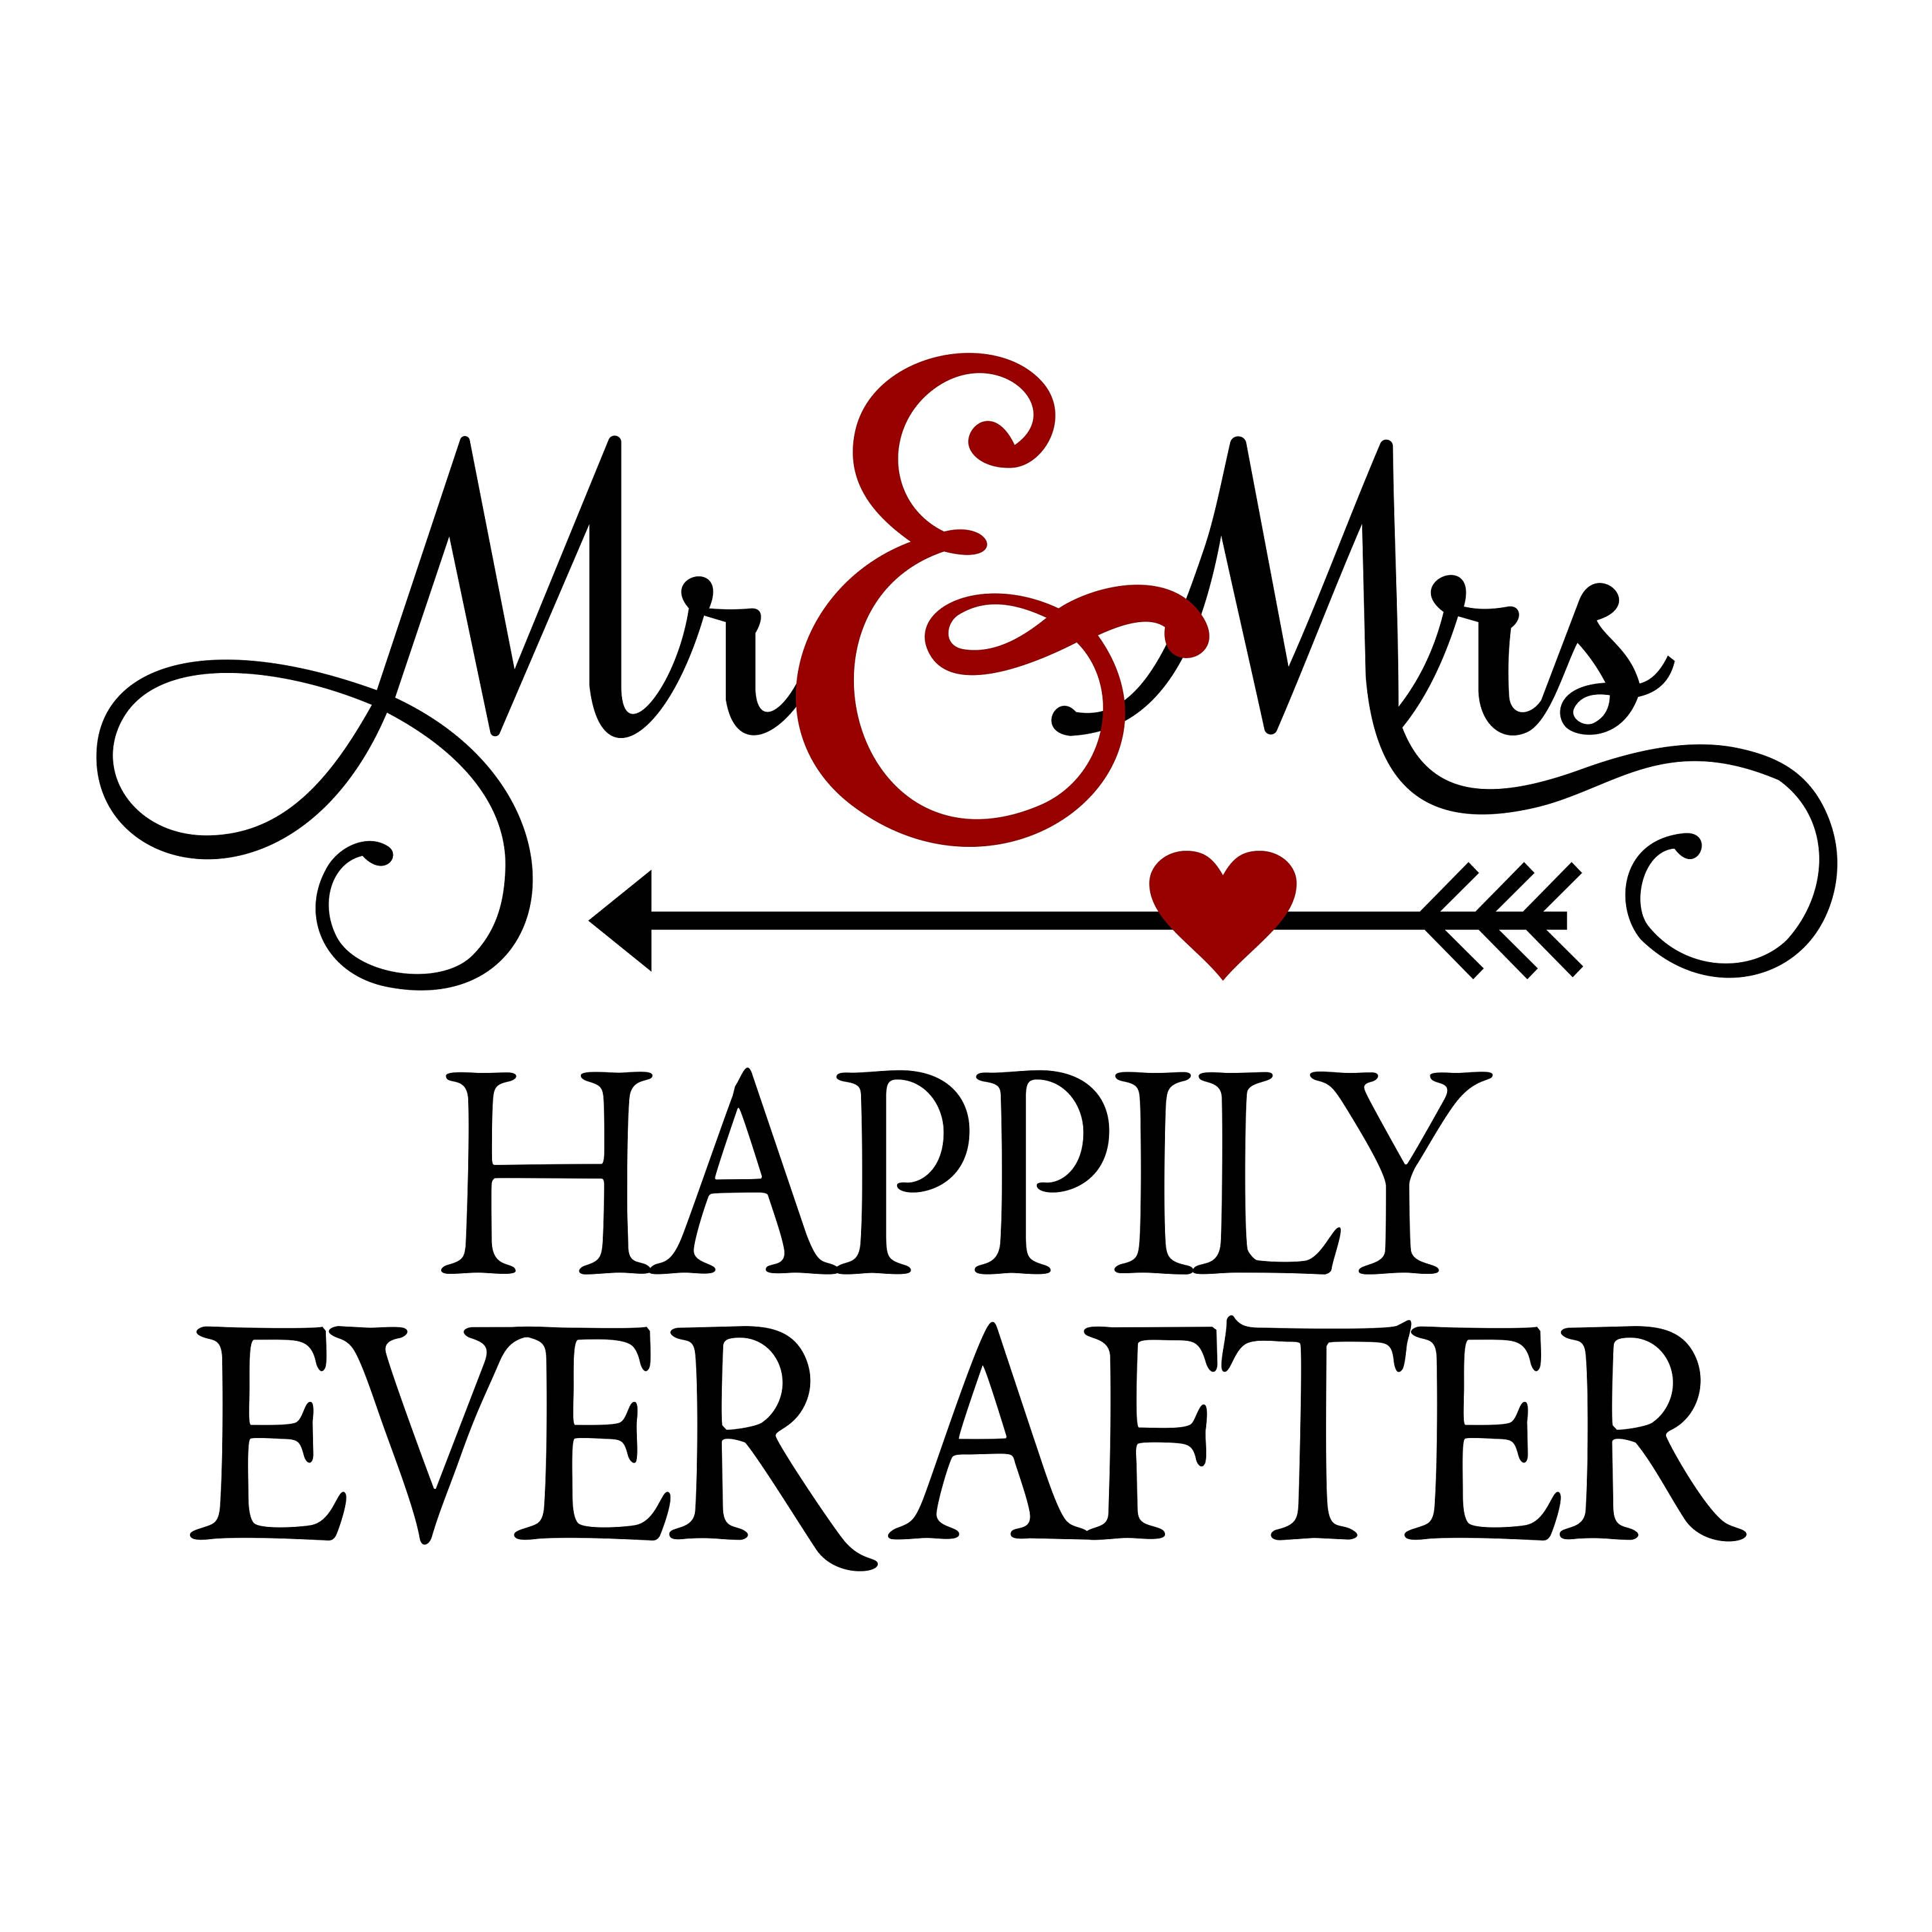 Mr clipart. Mrs happily ever after